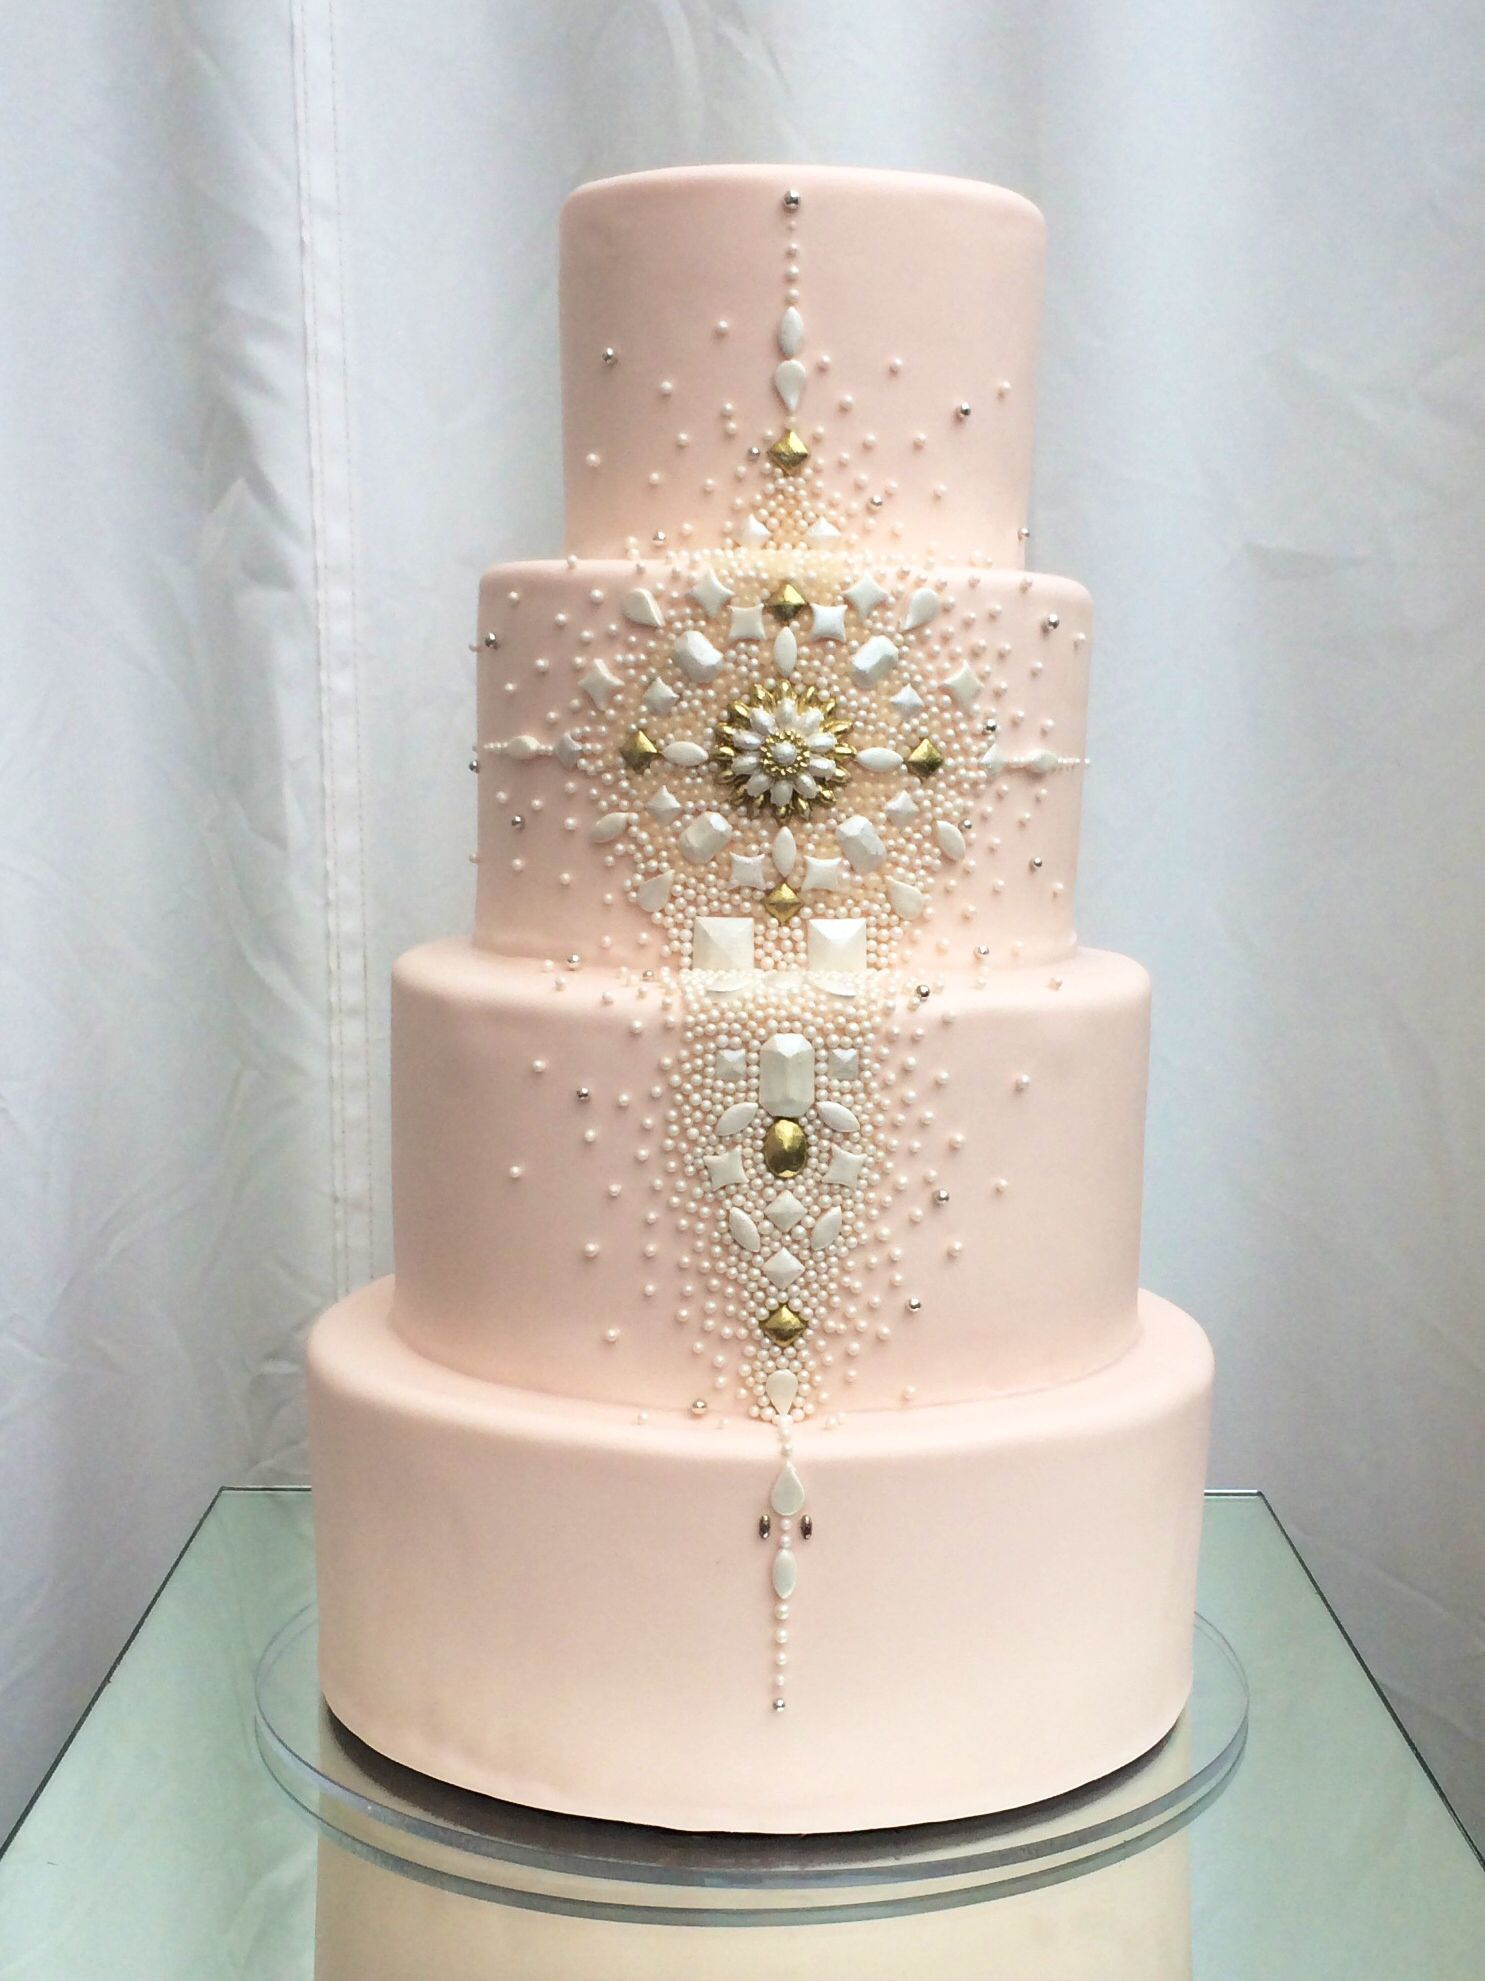 Superfine Bakery S Blingfest On Cake All Sugar Jewels Adorn This Blush For 100 At The Huntley Rooftop In Santa Monica